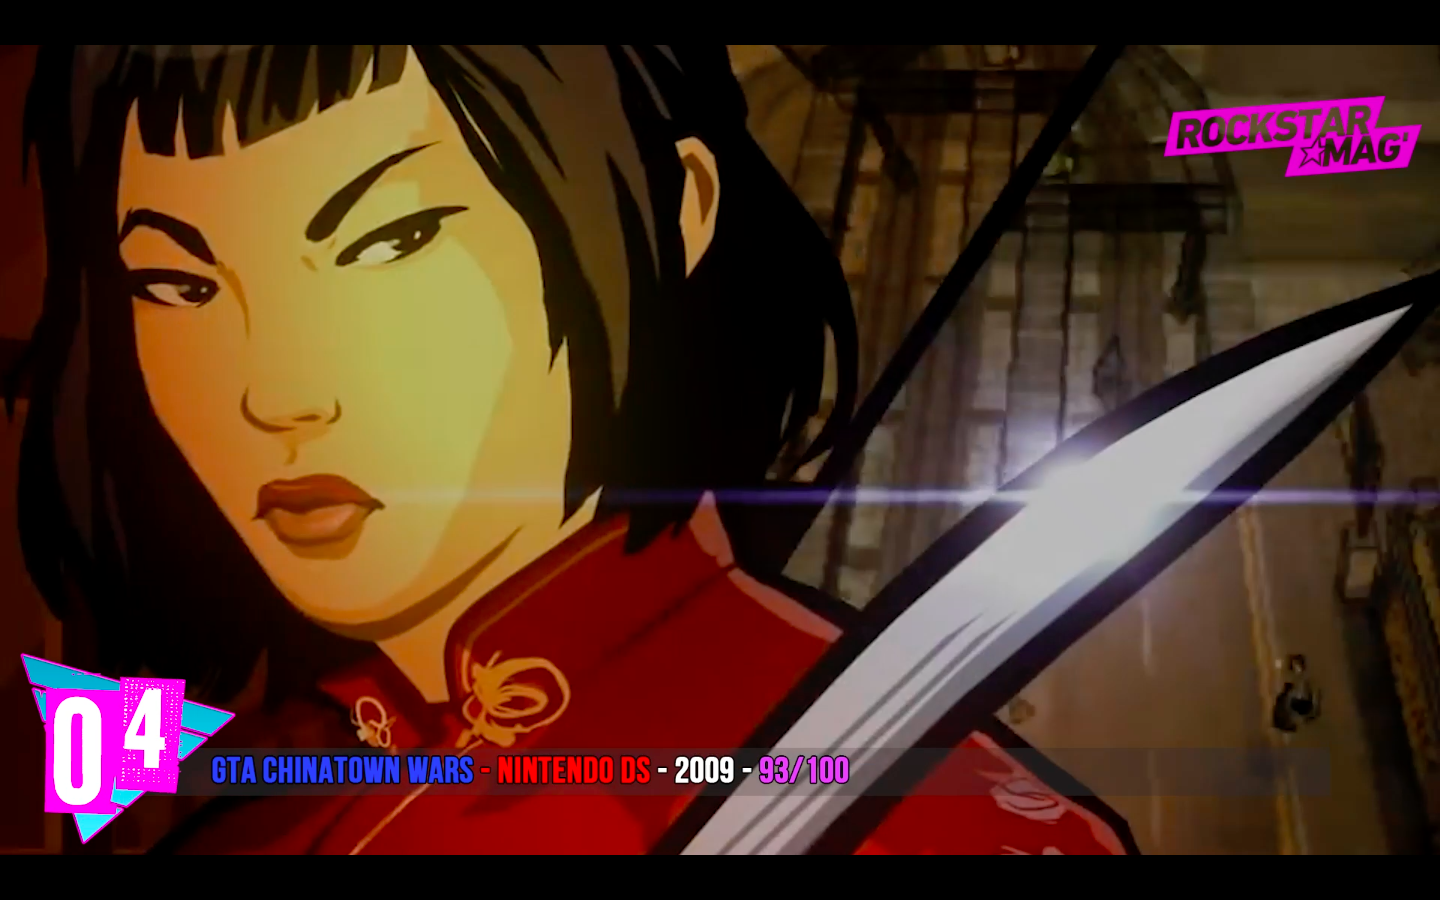 Top 05 - 04 - GTA Chinatown Wars